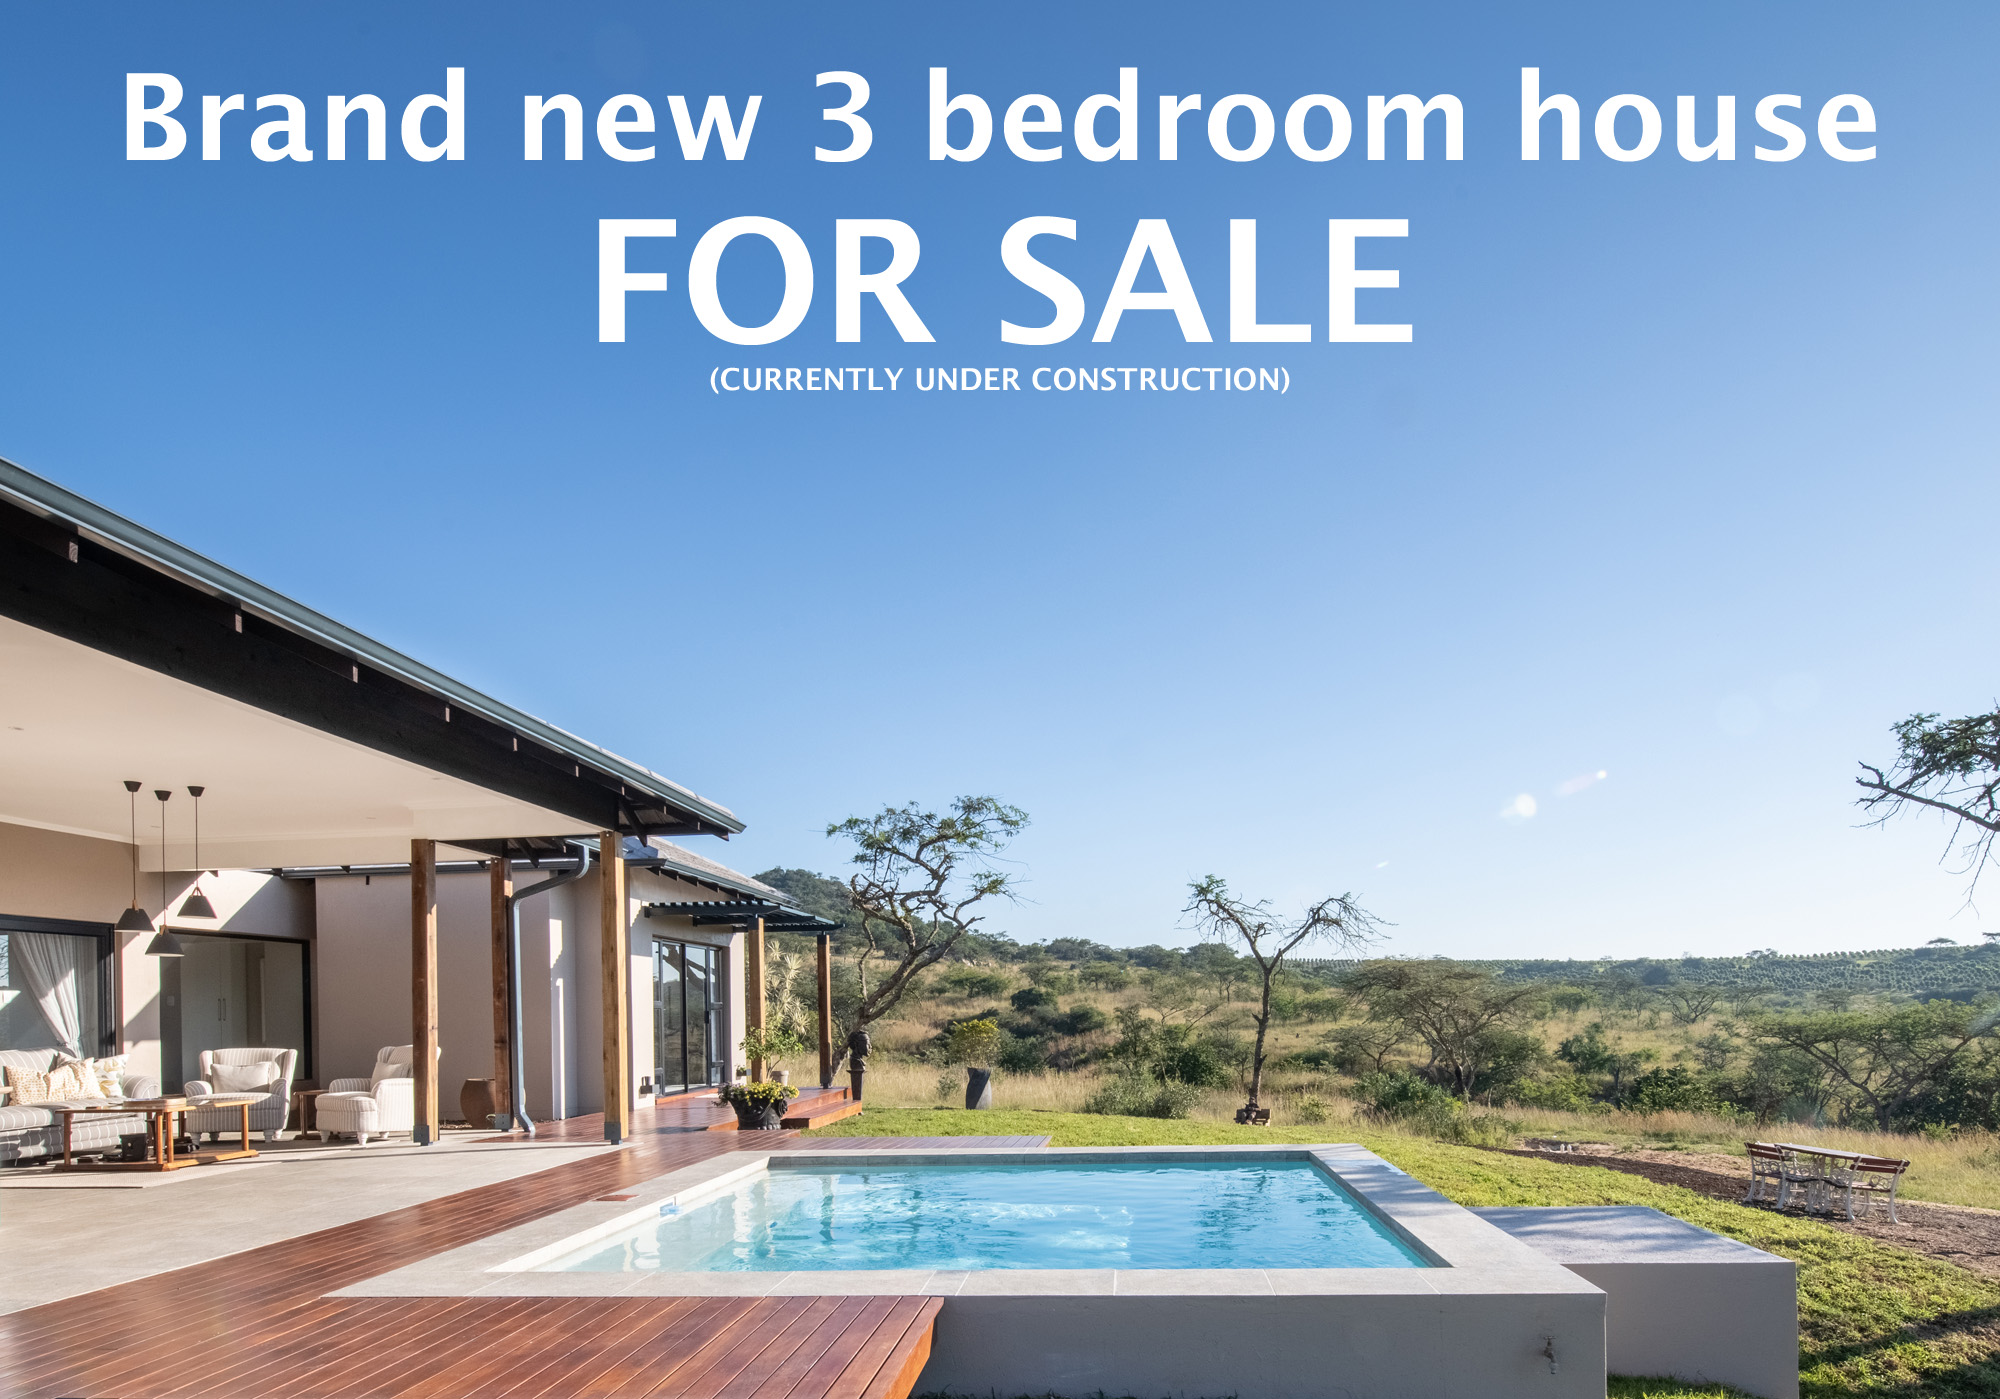 House for sale at Likweti Plains